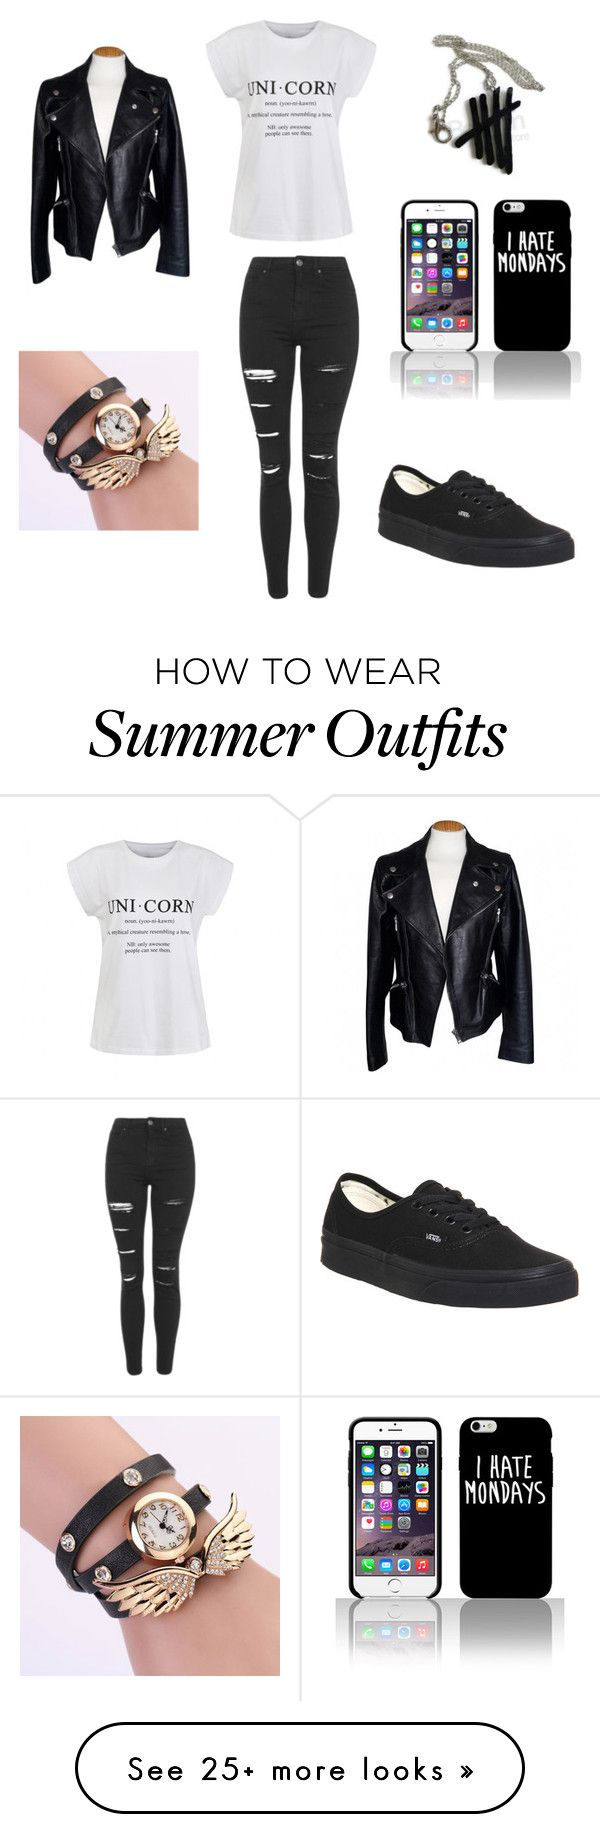 """Everyday outfit"" by myarogers2002 on Polyvore featuring Topshop, Ally Fashion, Vans, Alexander McQueen, women's clothing, women's fashion, women, female, woman and misses"